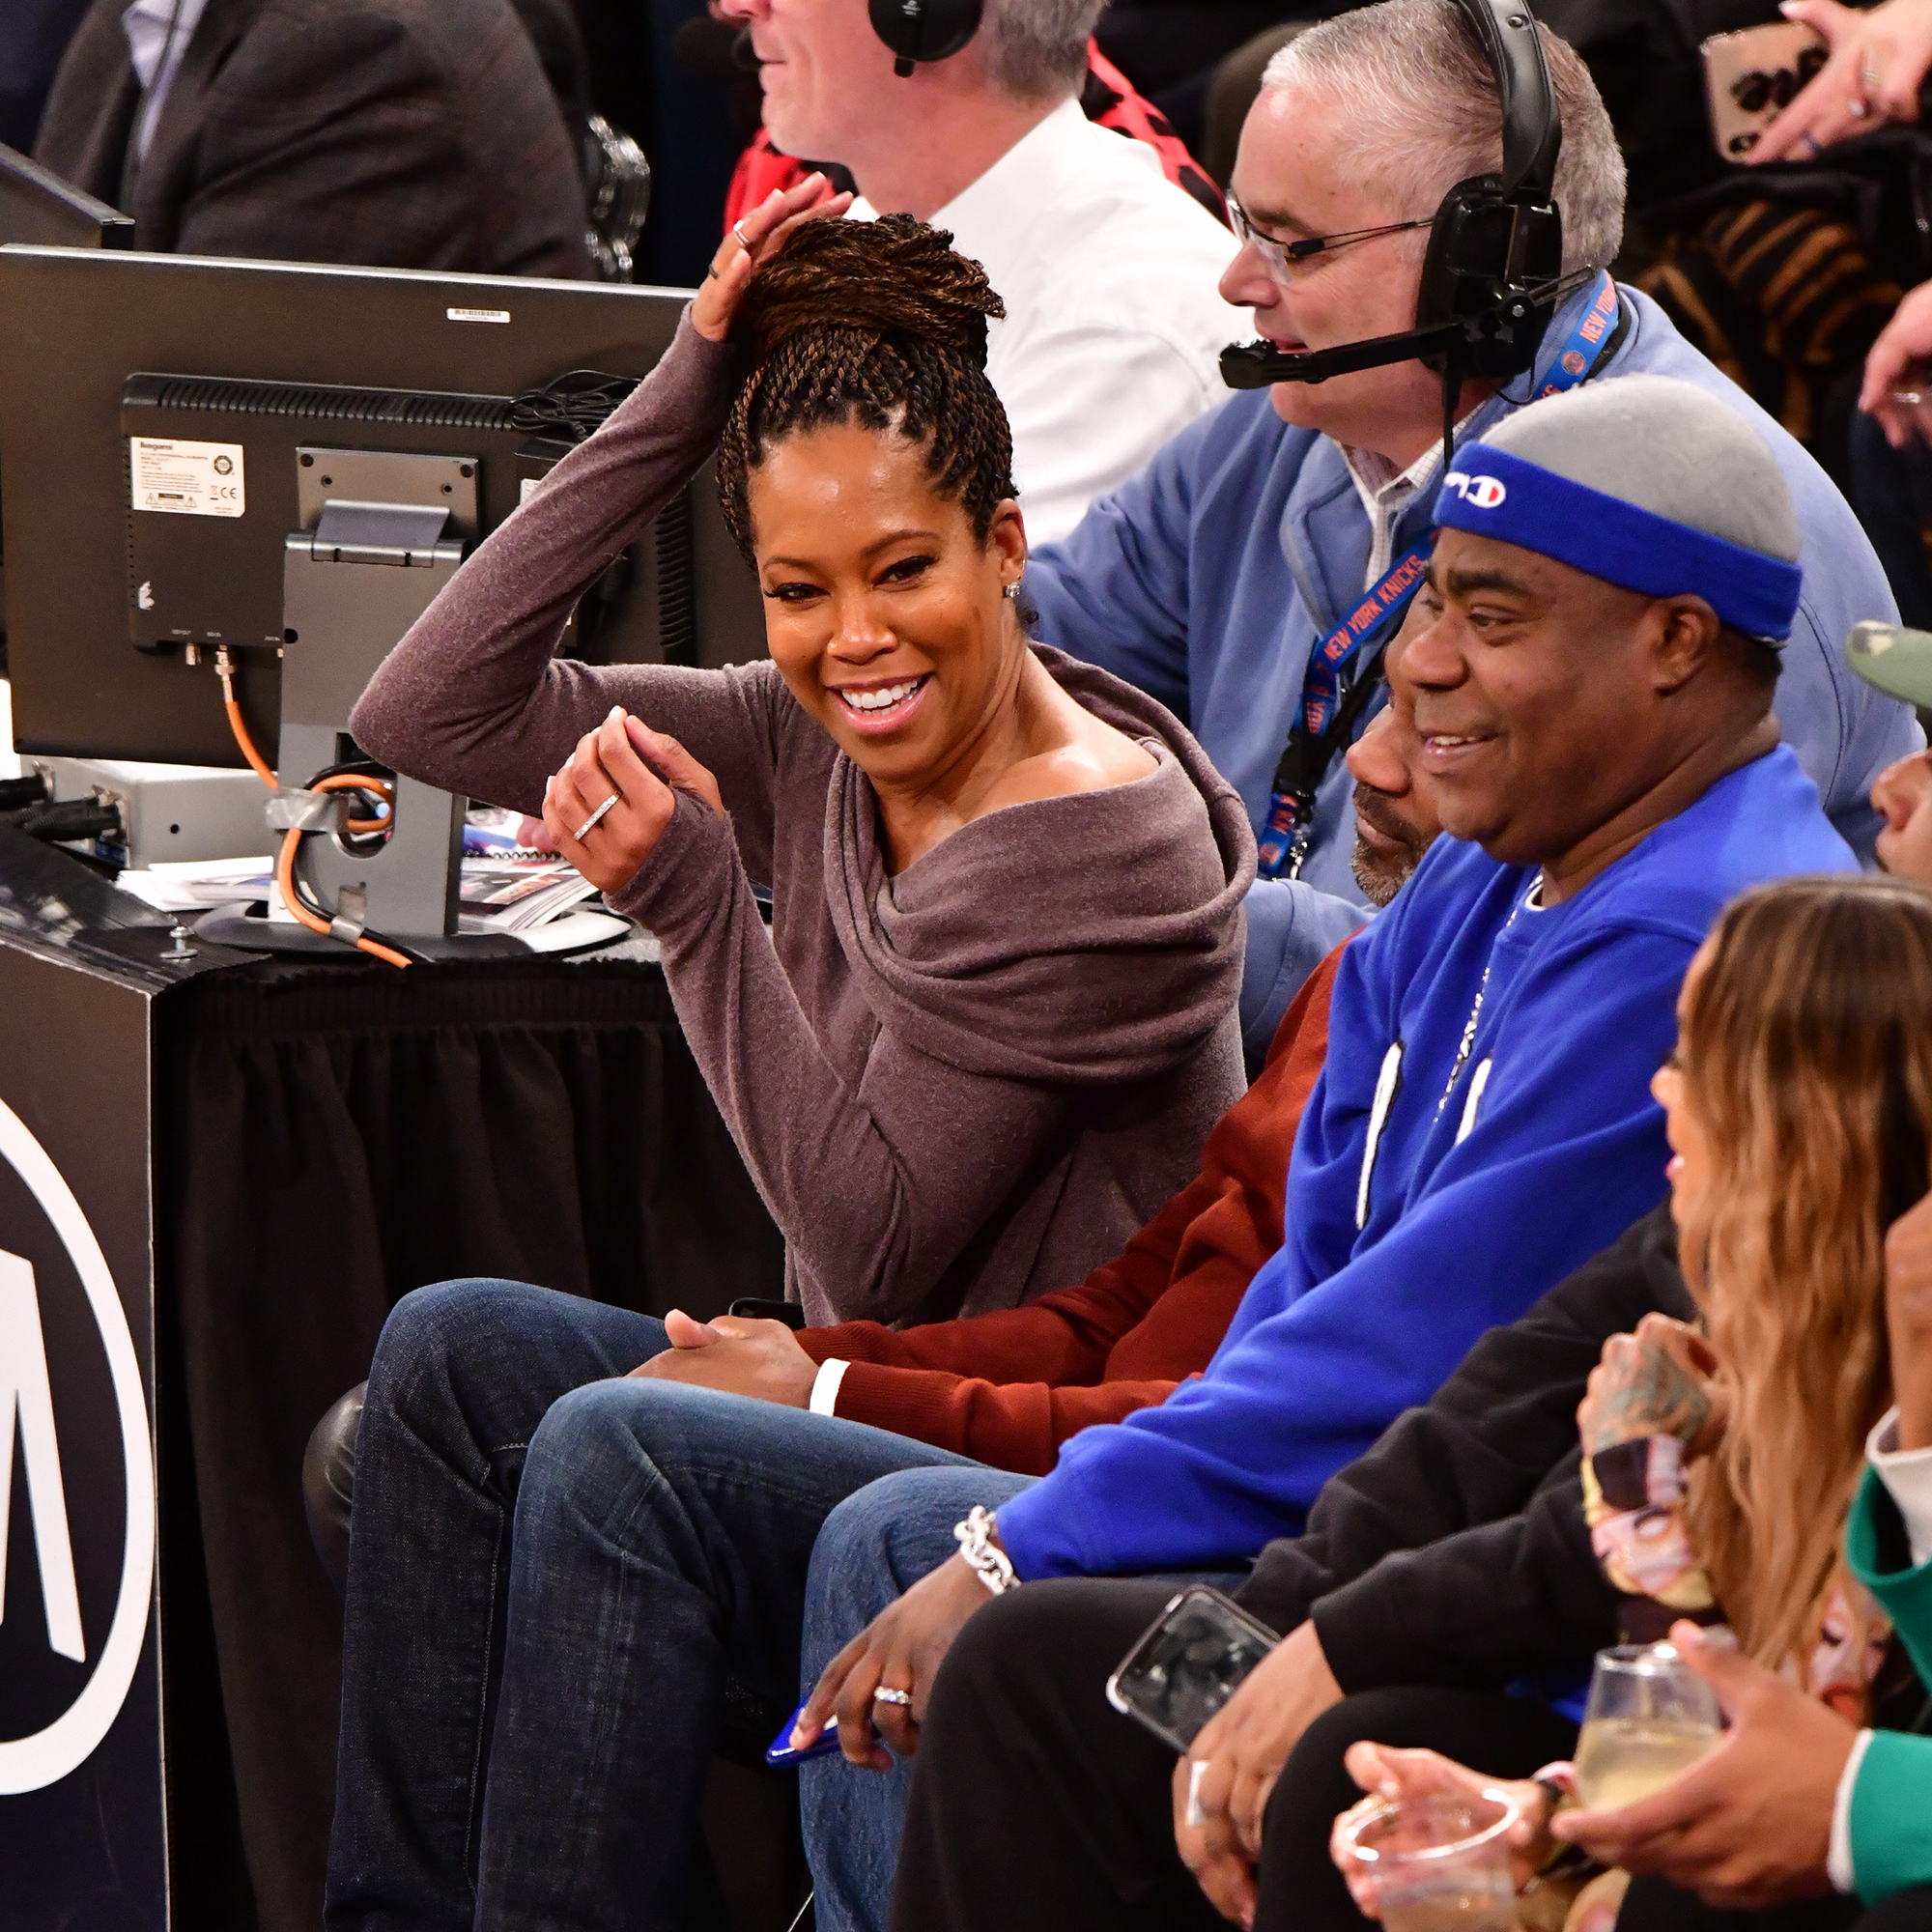 Regina King Is Nearly Taken Out by 76ers Player Joel Embiid at Basketball Game - Regina King and Tracy Morgan attend Philadelphia 76ers v New York Knicks game at Madison Square Garden on February 13, 2019 in New York City.